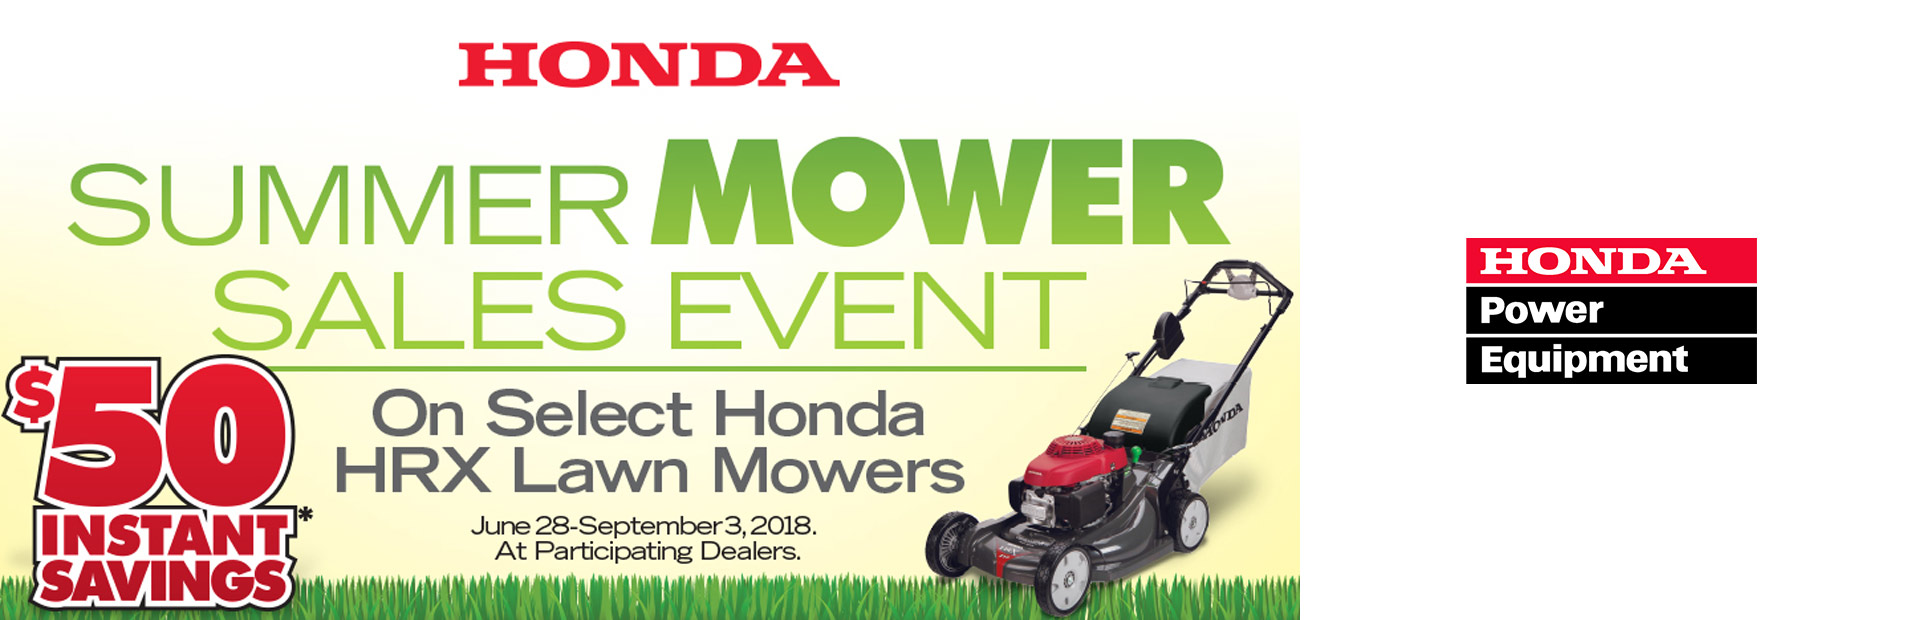 Honda Power Equipment: Honda Summer Mower Sales Event